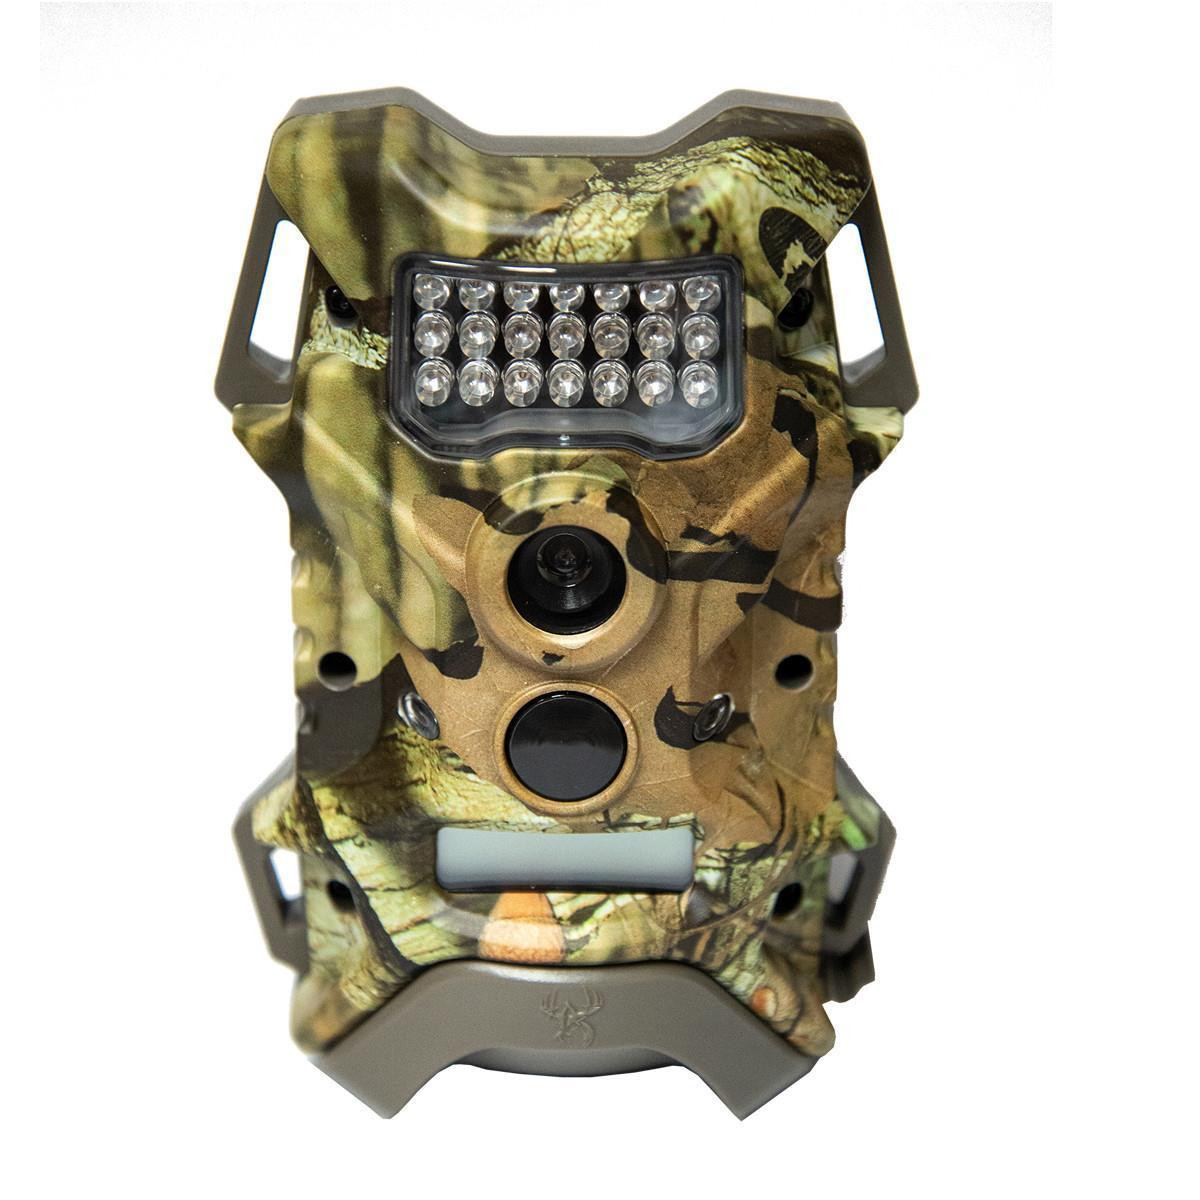 Wildgame TX8I39DE2-9 D.R.T Game Camera - 616376512353